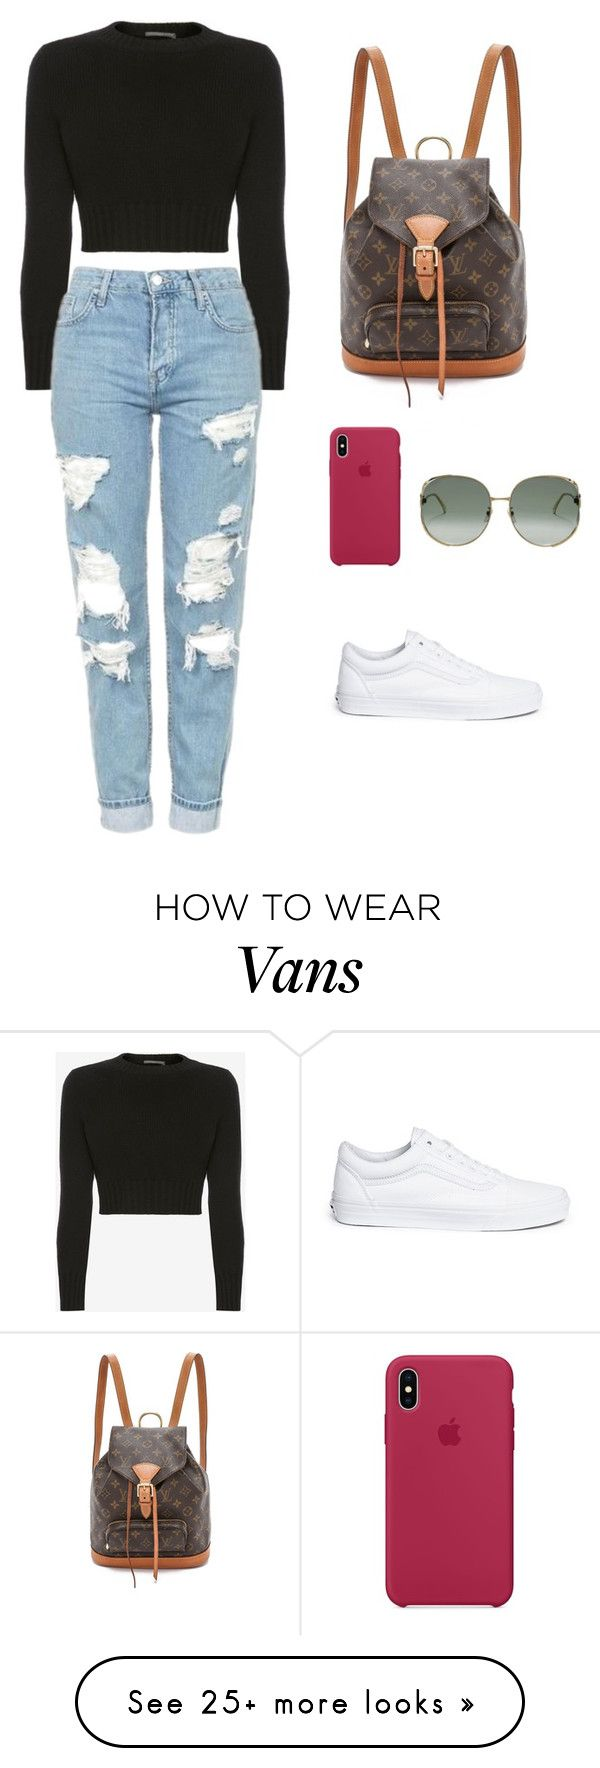 """""""#338"""" by luluuuuuuuuuu on Polyvore featuring Alexander McQueen, Vans and Gucci"""